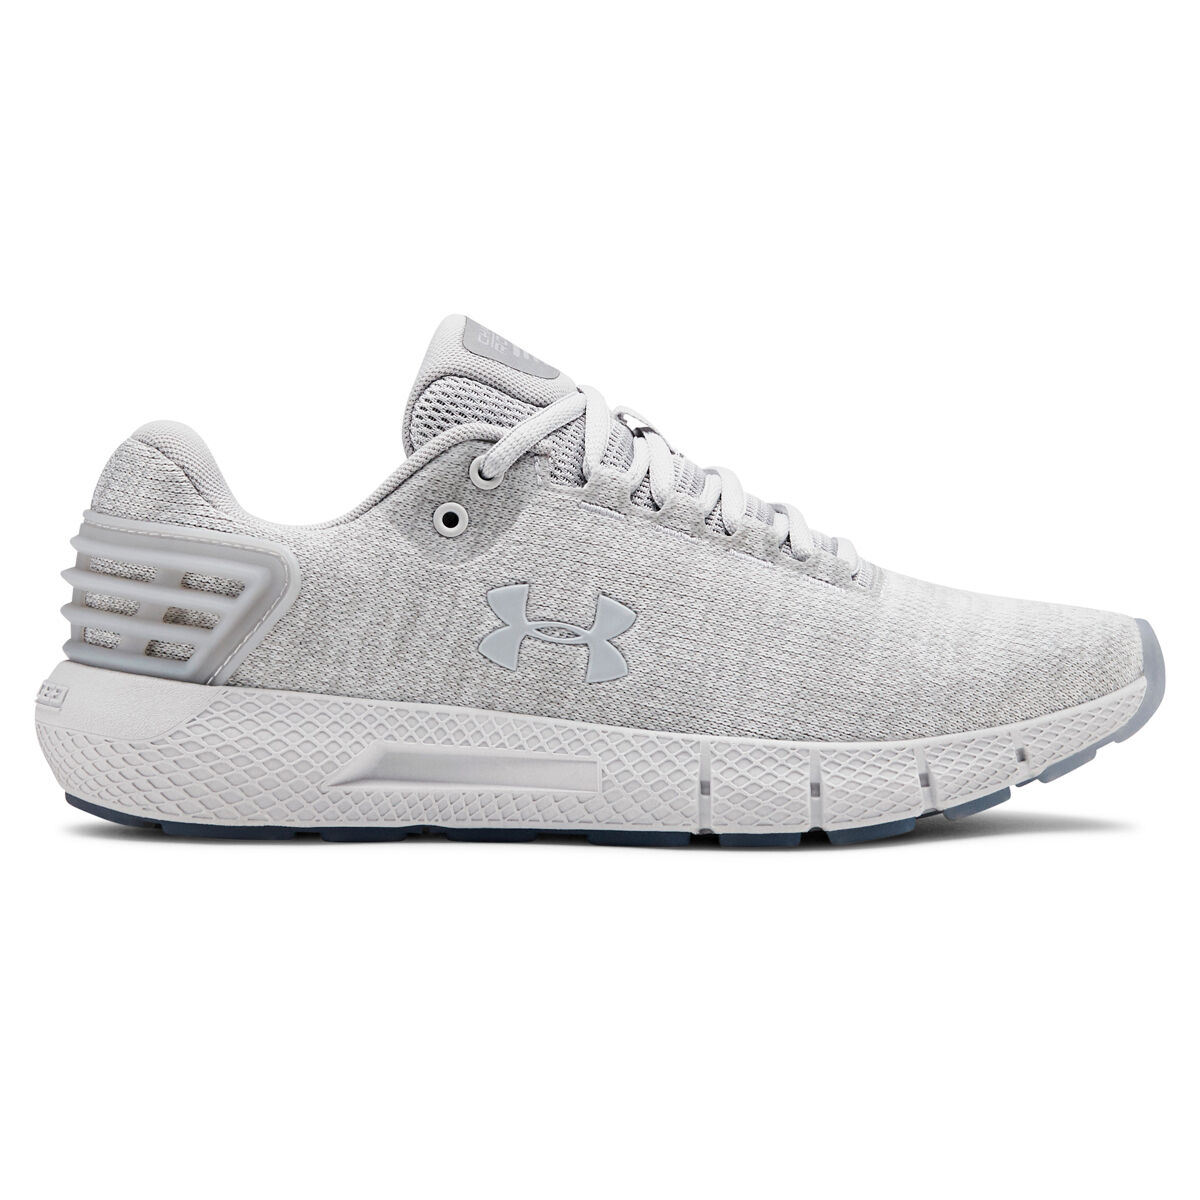 Under Armour Charged Rogue Twist Womens